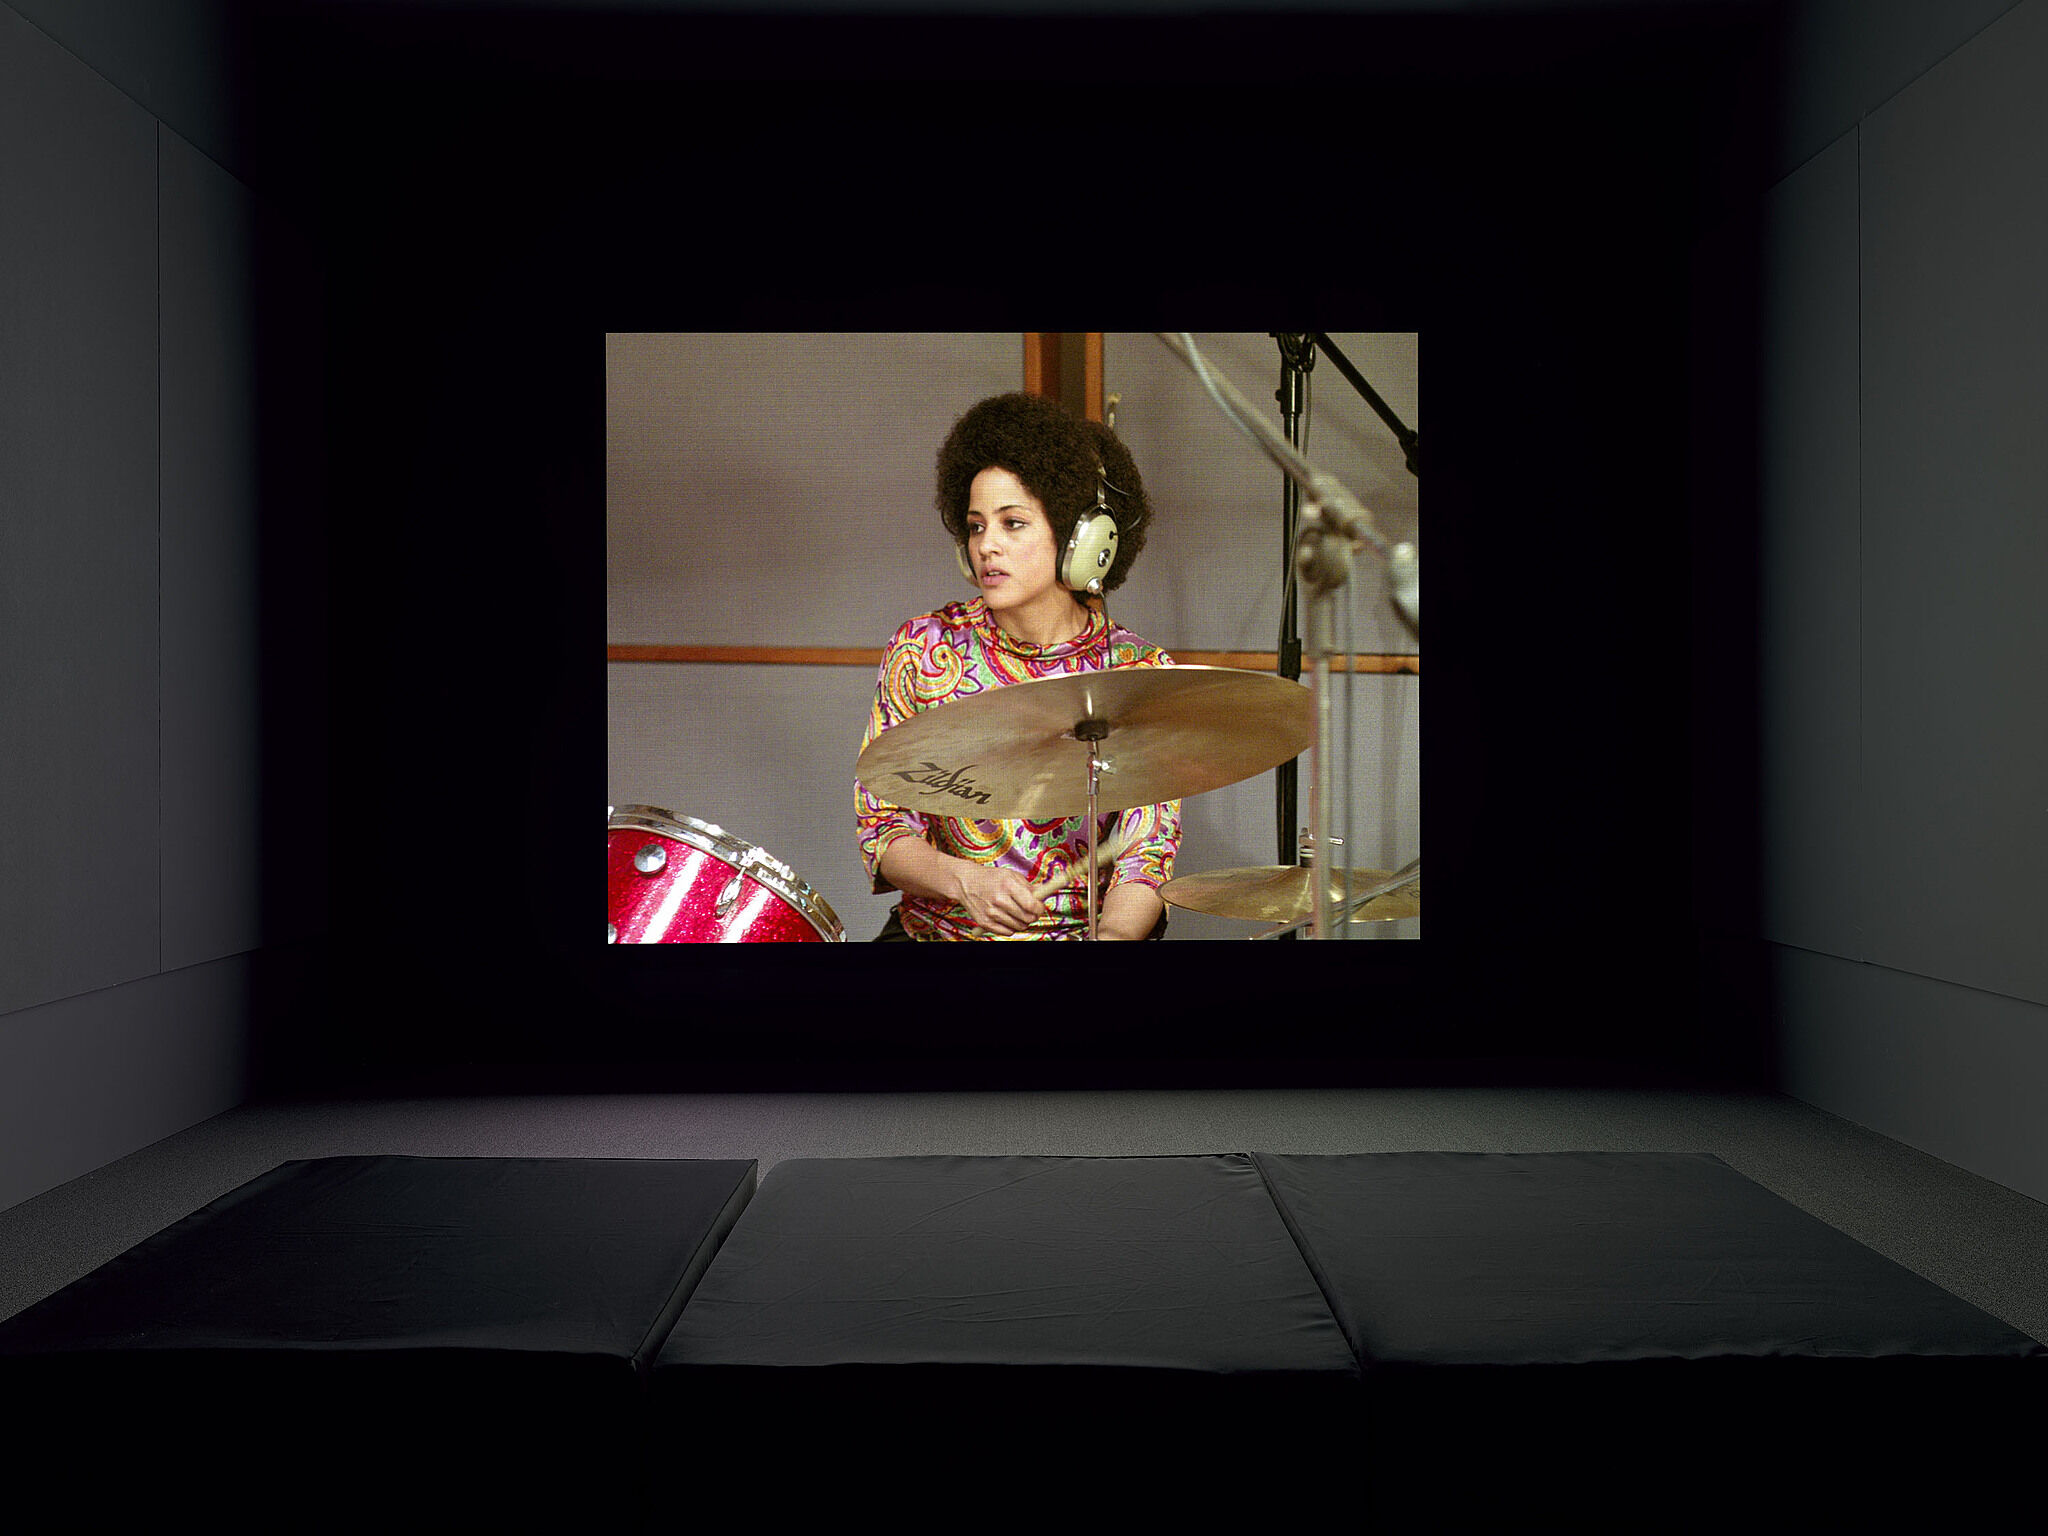 A video projection of a person playing the drums